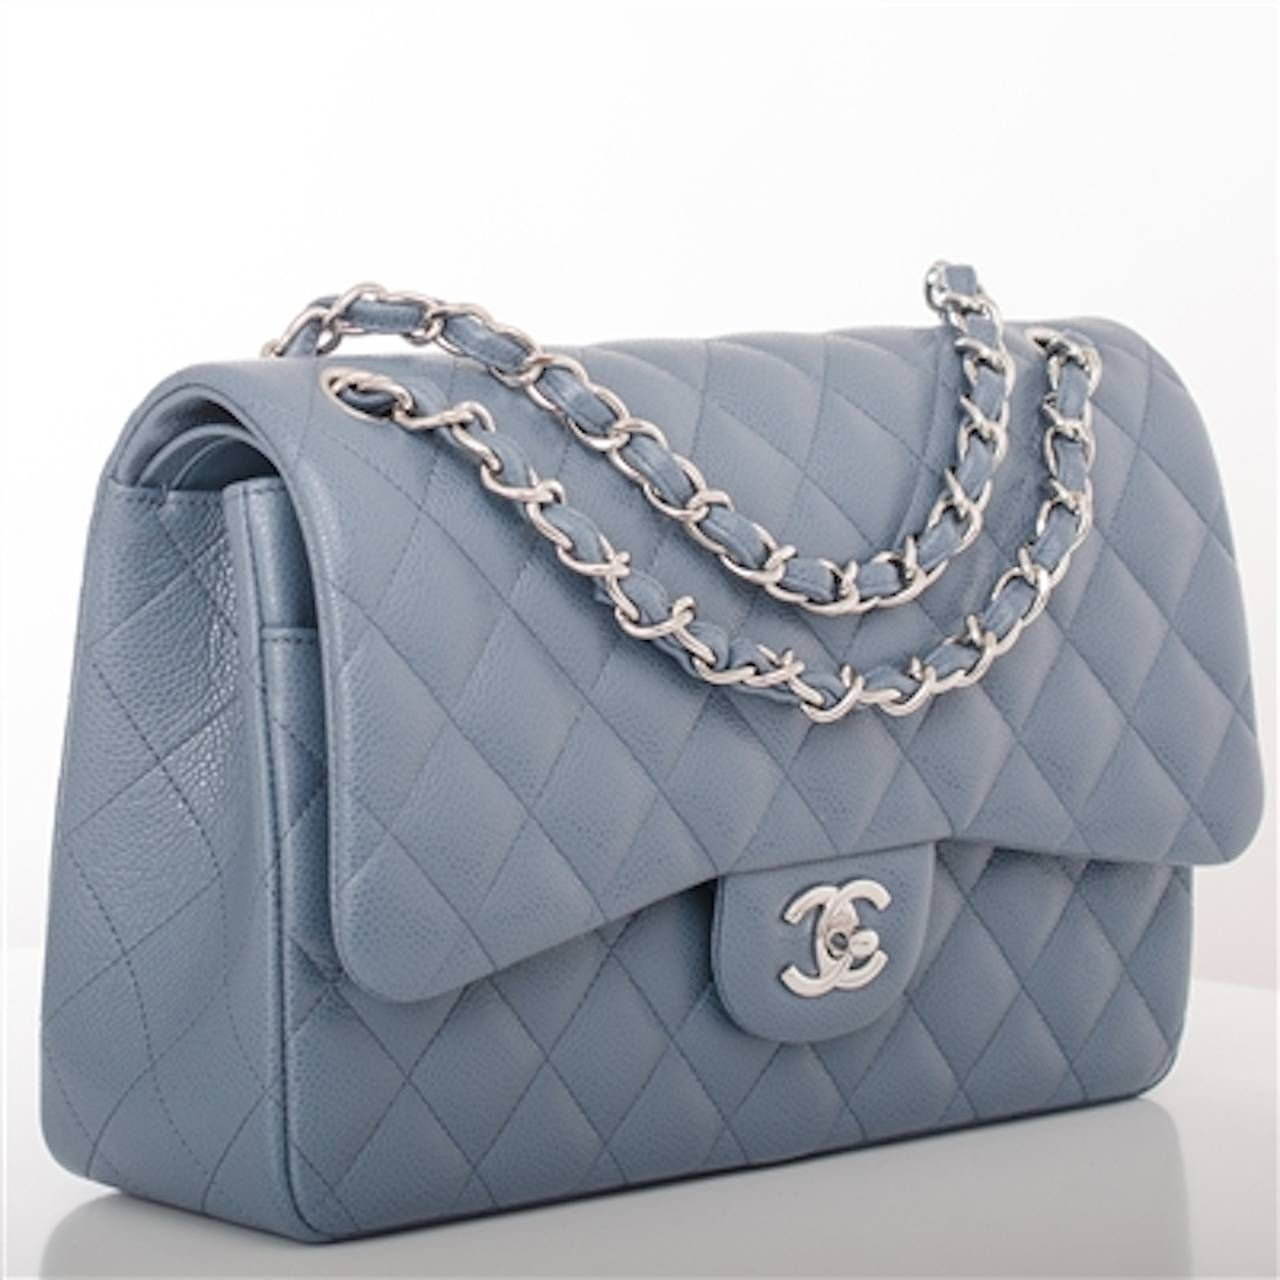 810dbb7e0e0b Chanel Blue Quilted Caviar Jumbo Classic 2.55 Double Flap Bag ...